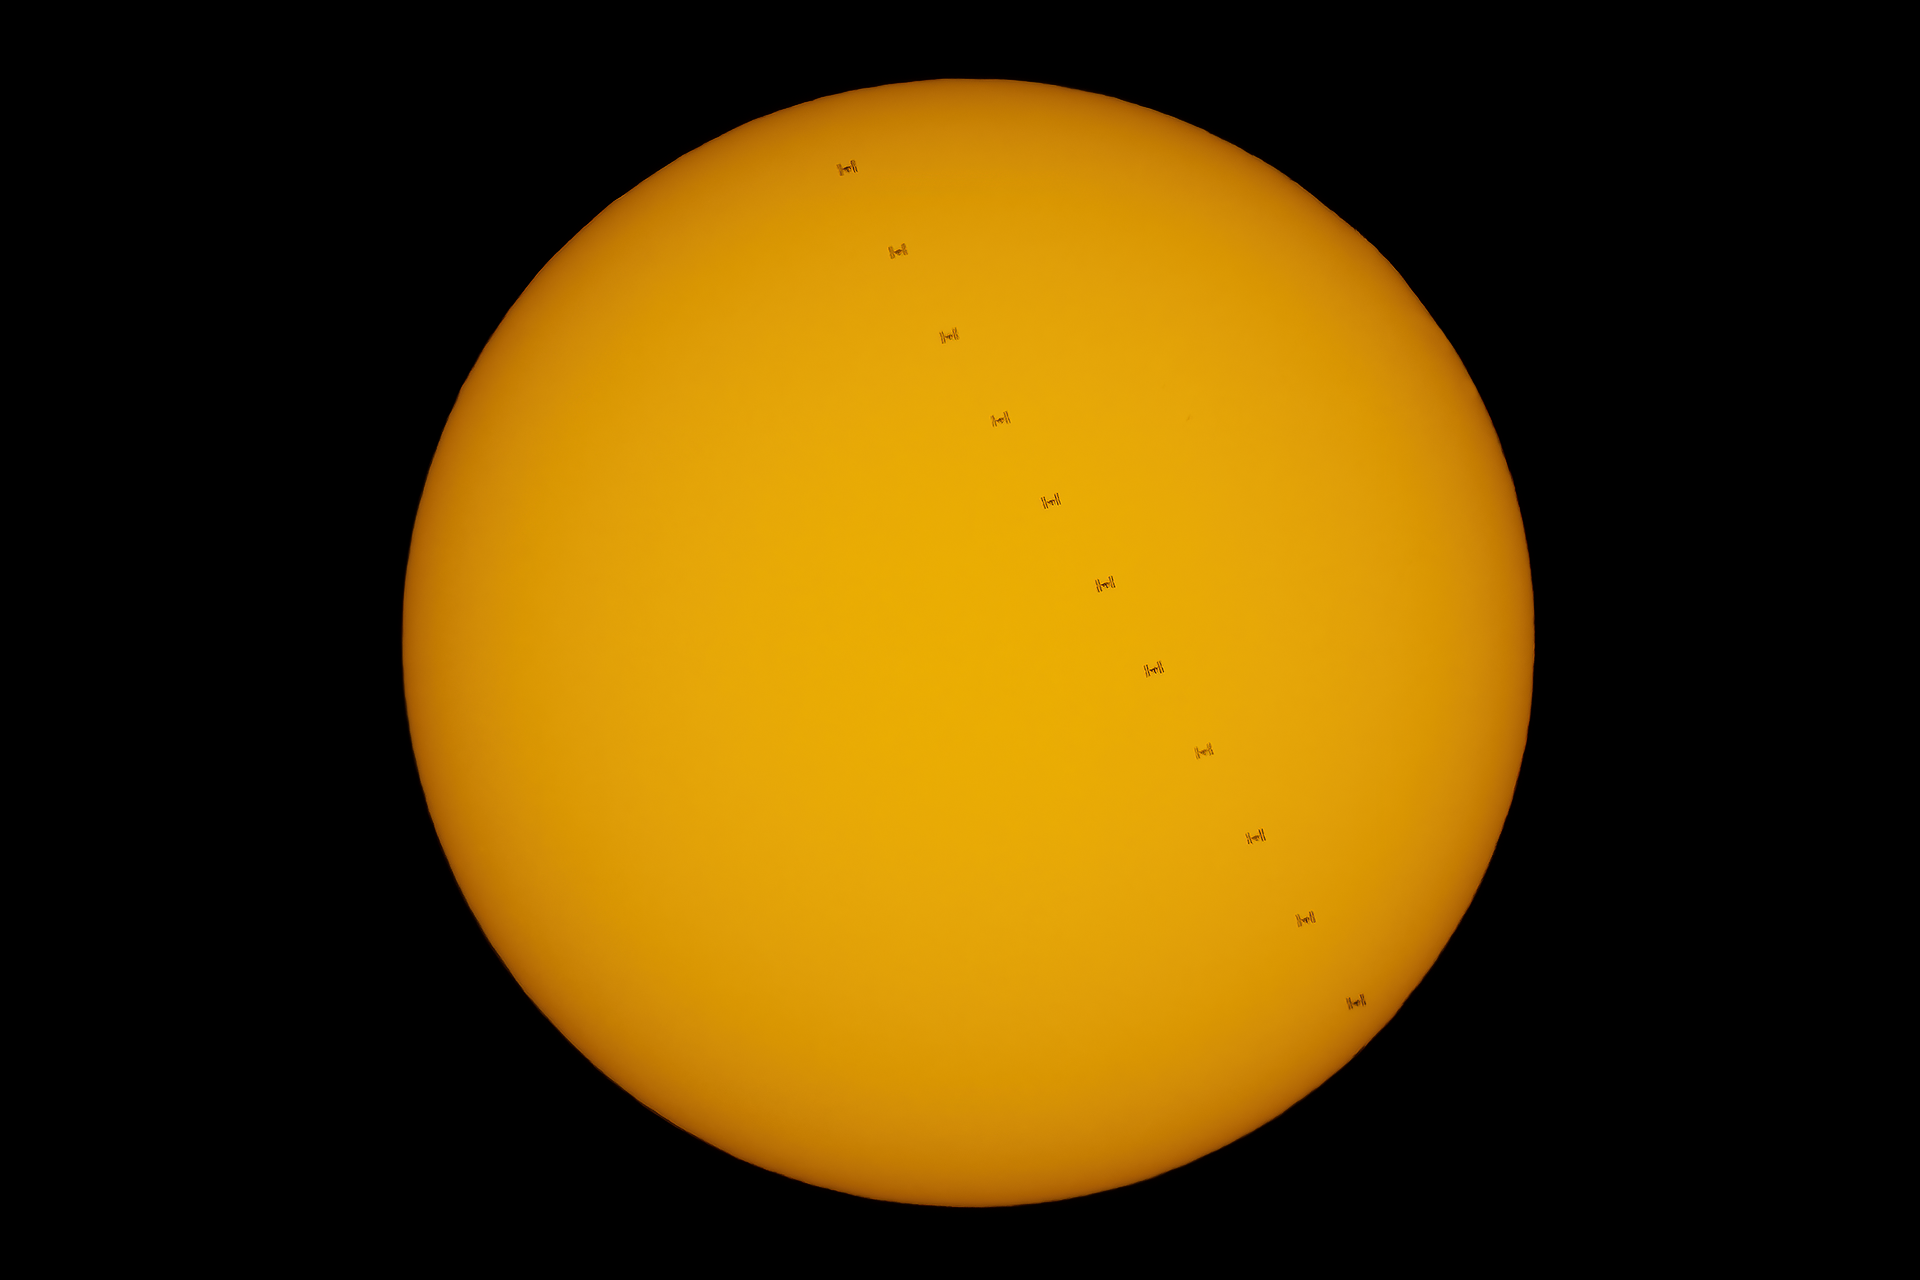 04kwi20_ISS_Sun_stack_G1527.png